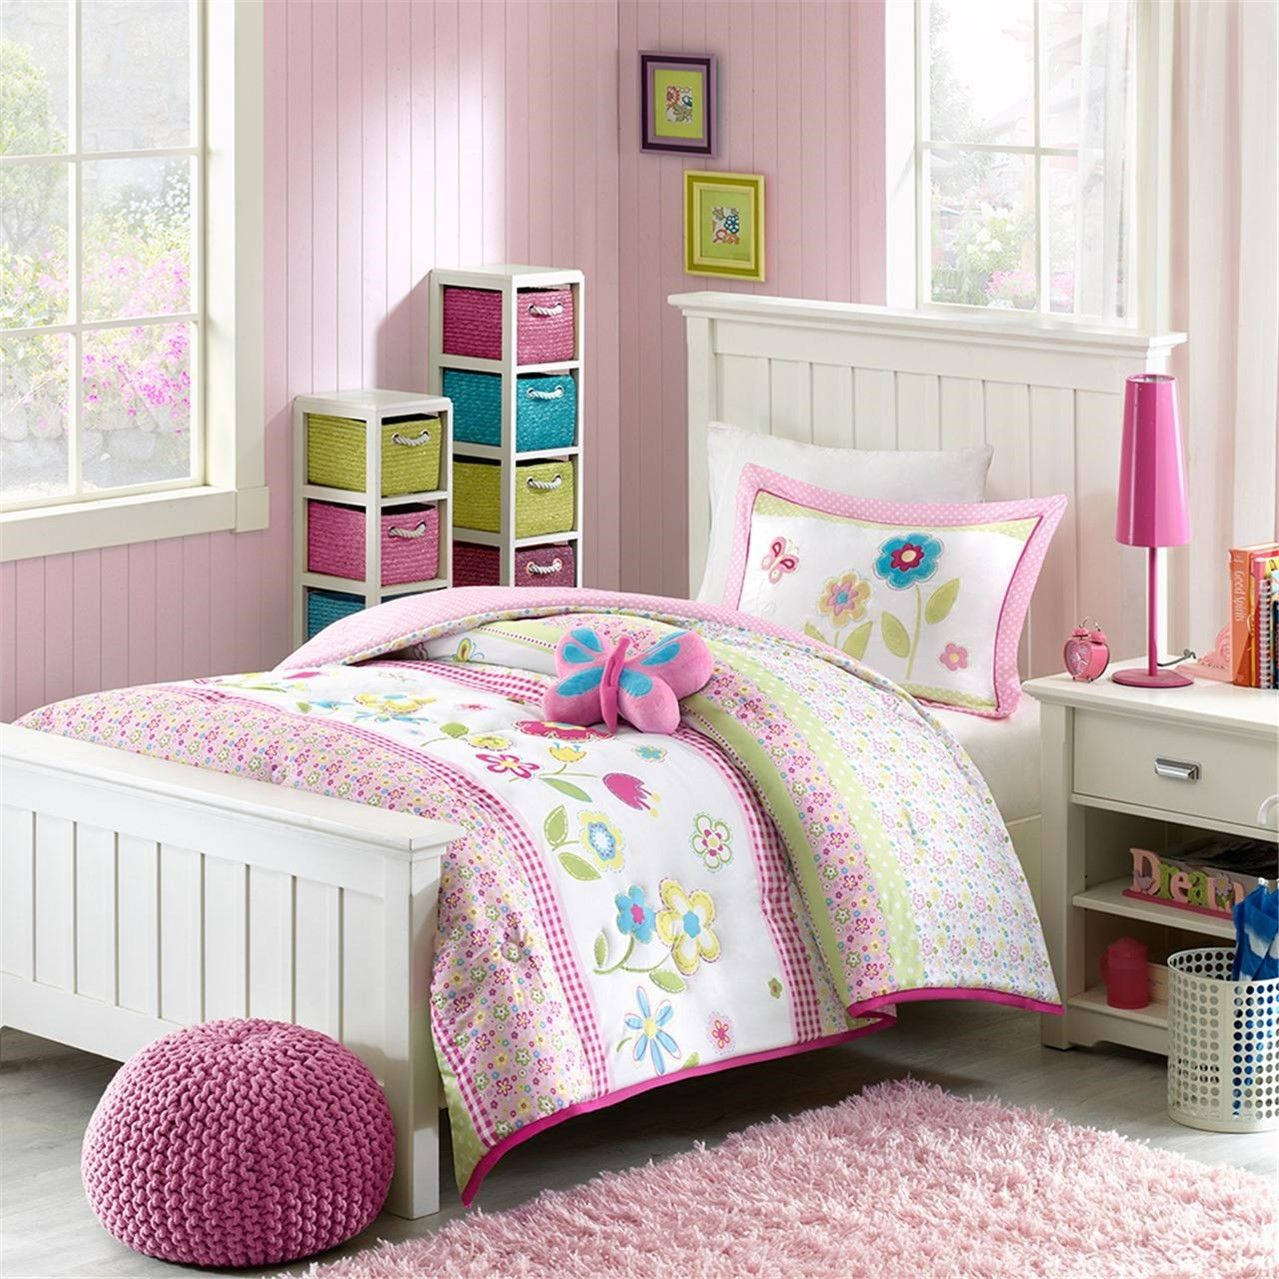 nursery girls inspiring little which crib throughout teen is residence tips bed girl sets comforters bedding idea baby comforter your